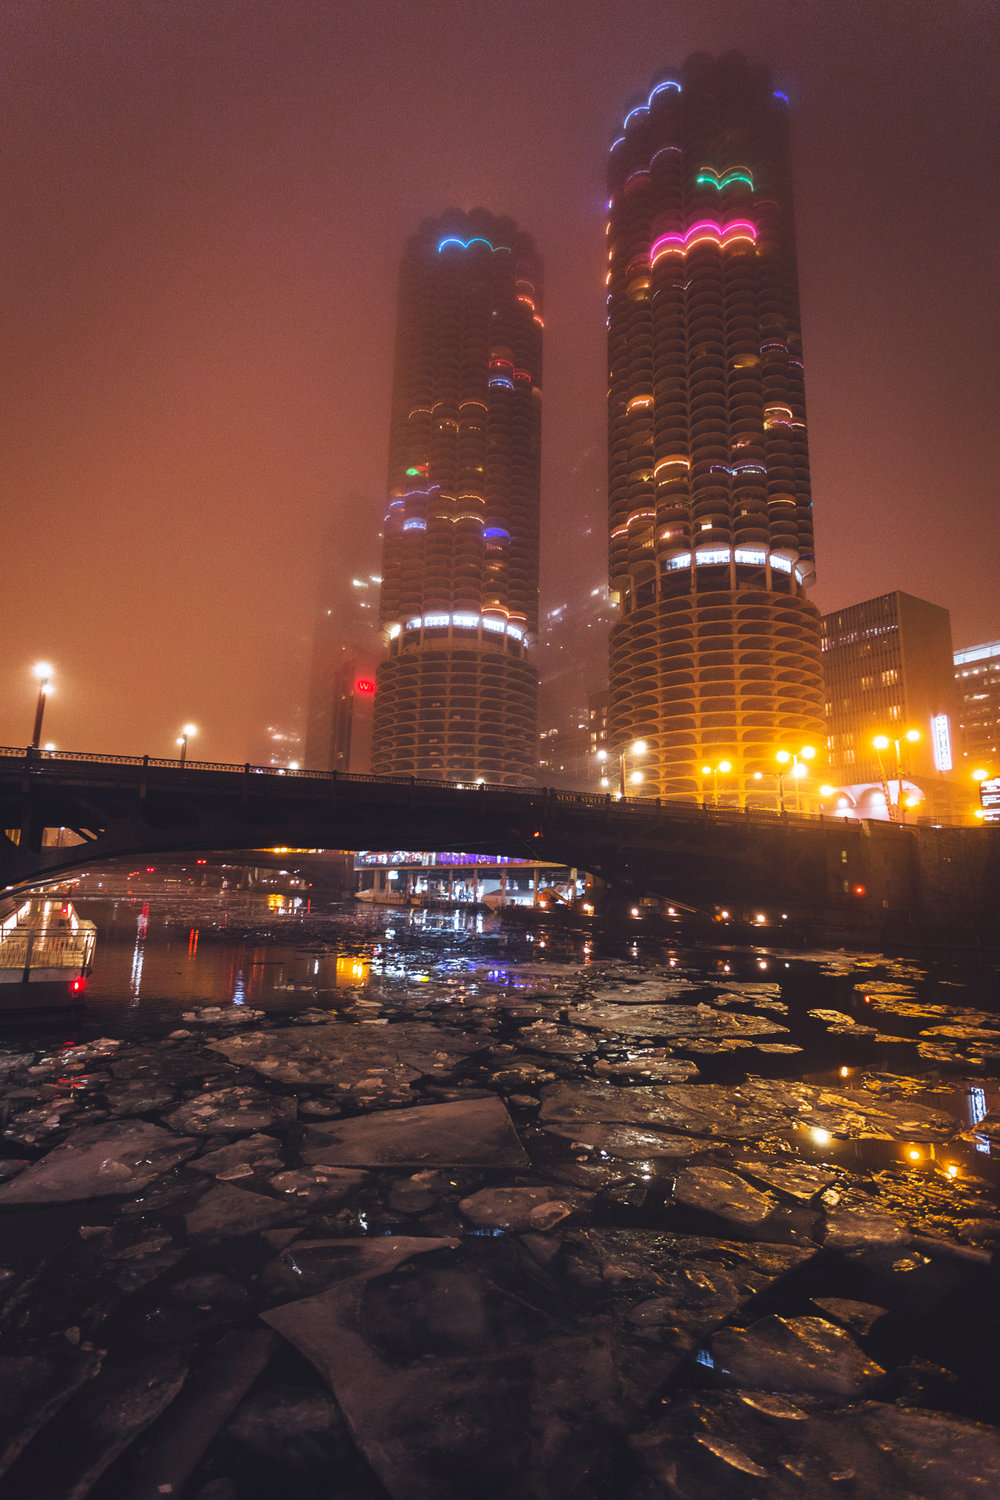 Marina City towers and Chicago river in fog